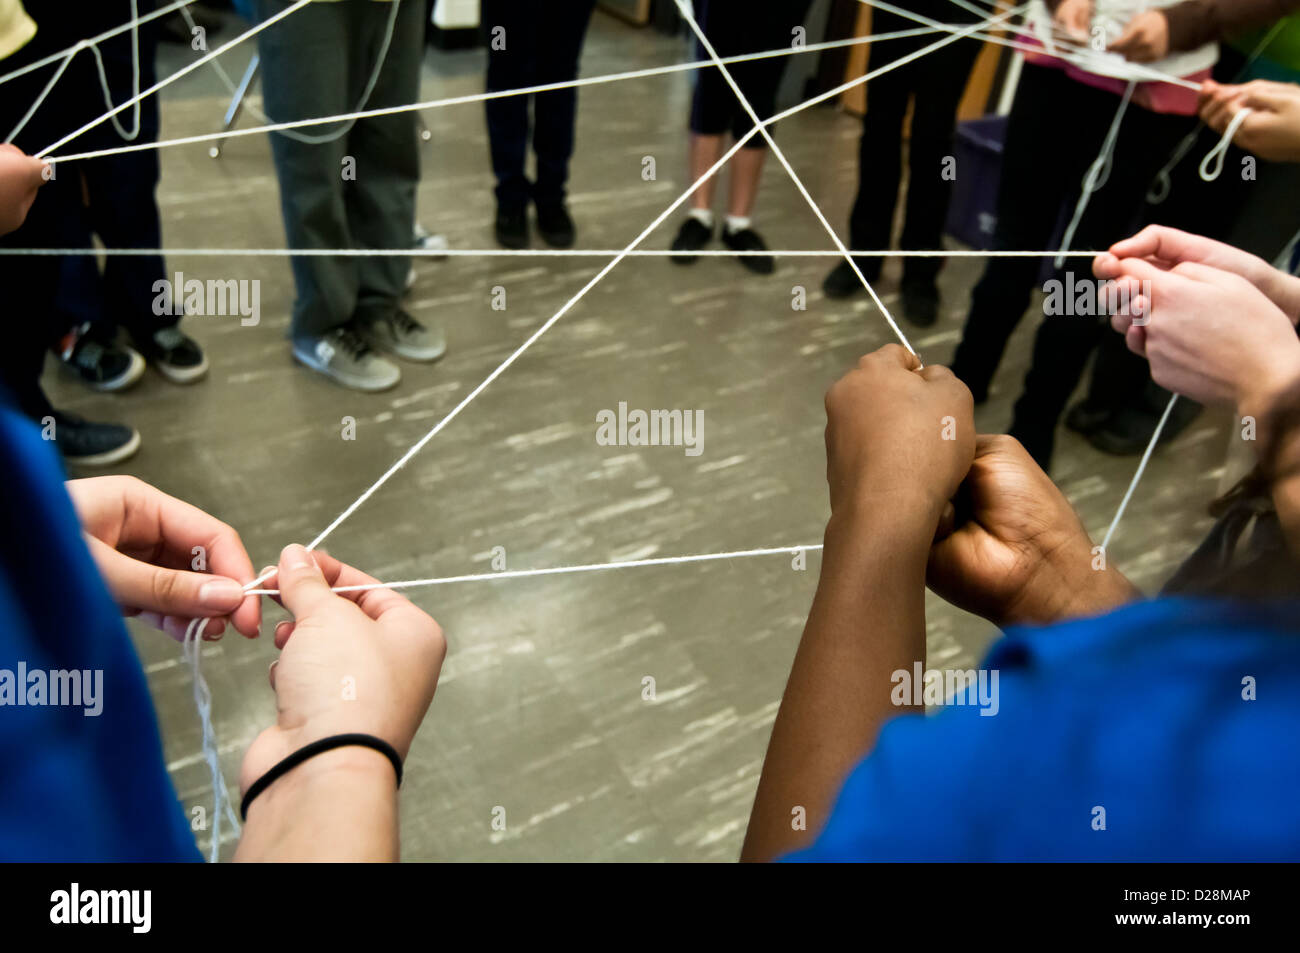 School children play a game that demonstrates their interconnectedness - Stock Image